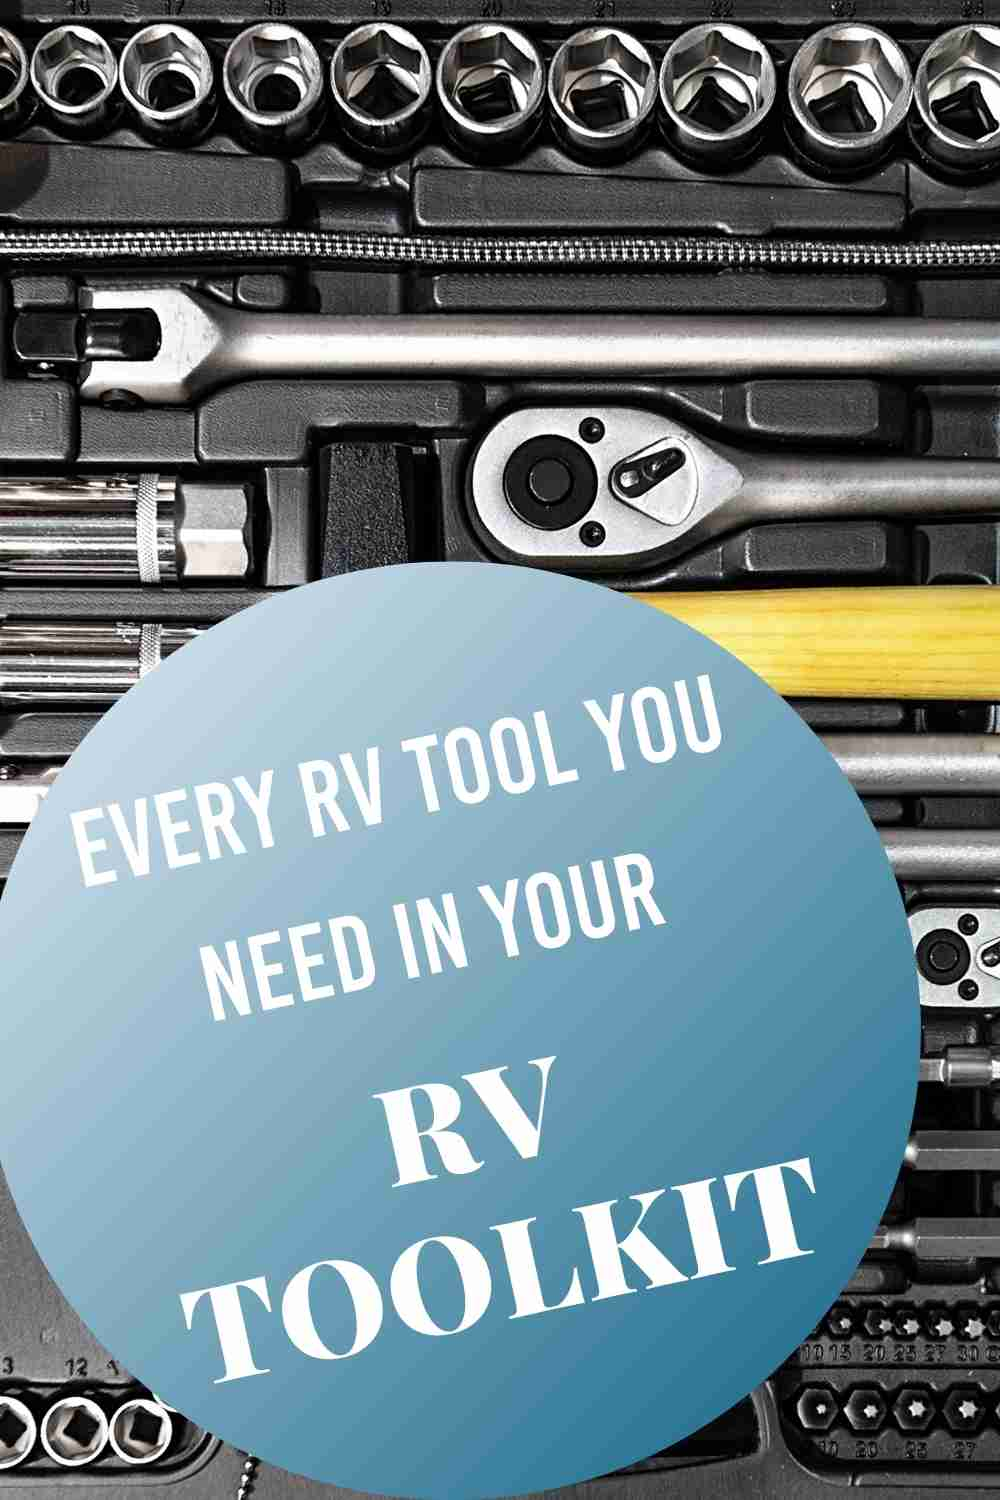 50+ Must-Have Tools for your RV Toolkit on Pinterest